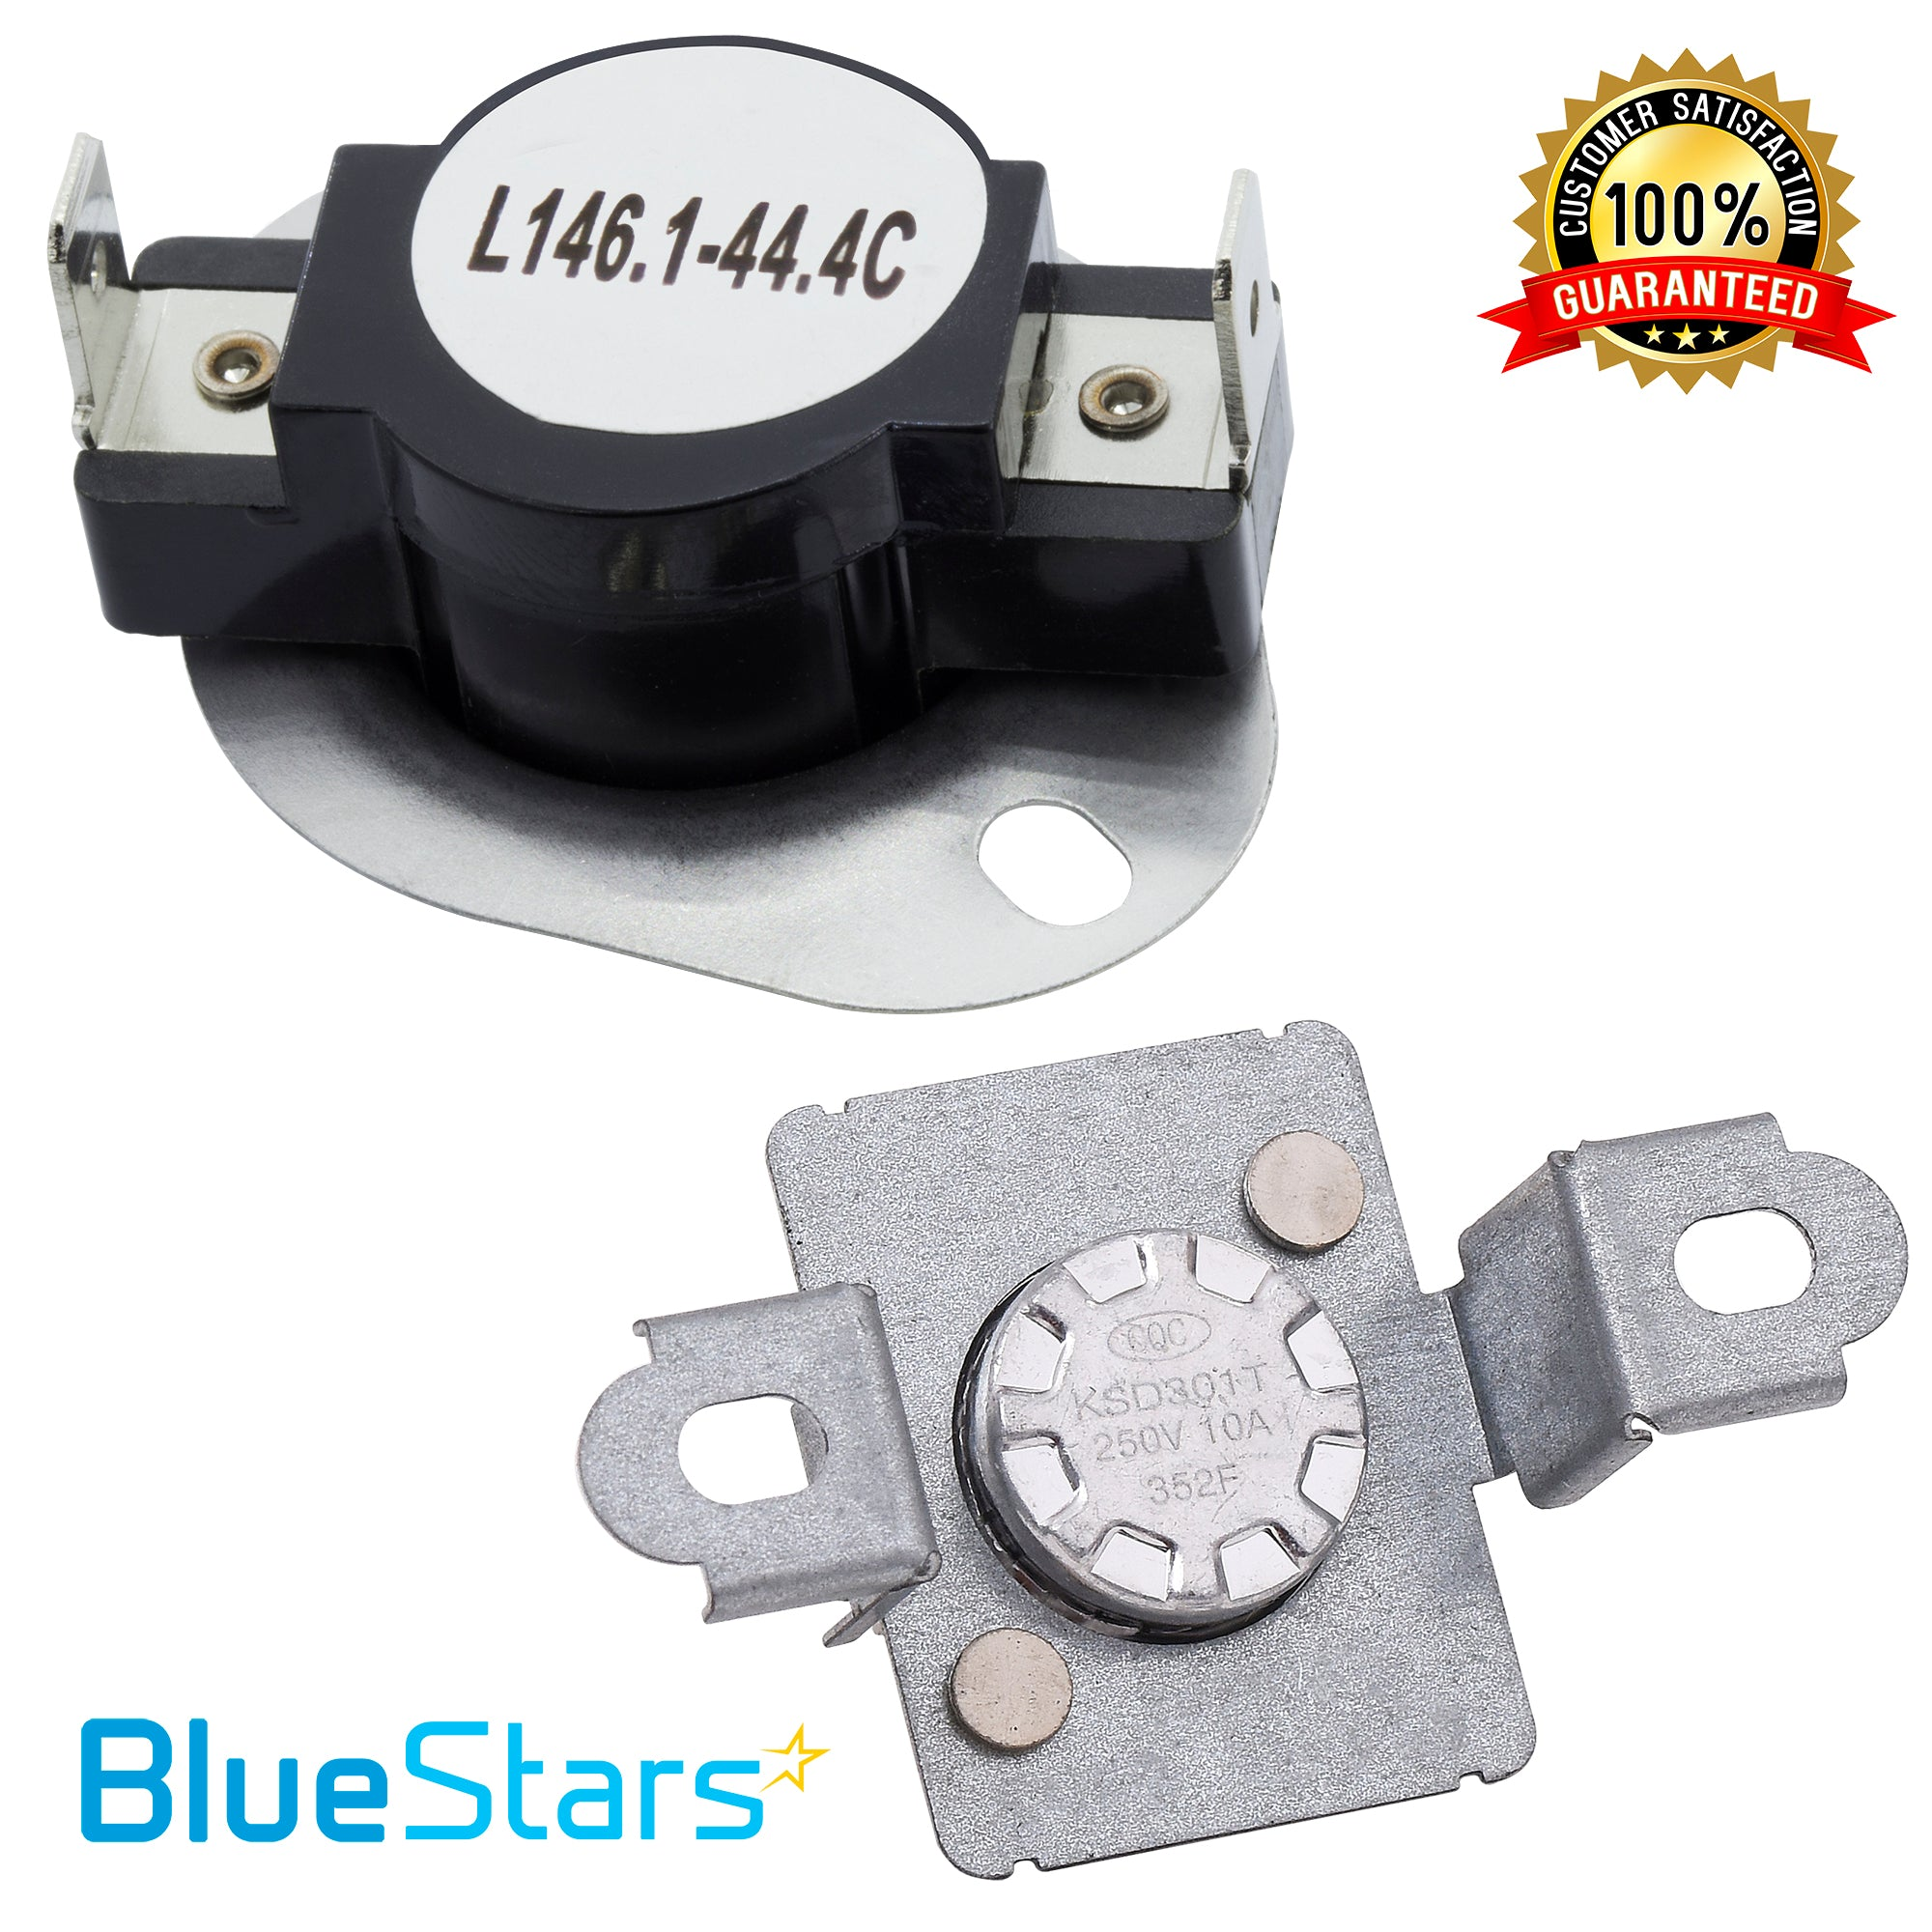 Dryer Thermal Cut f Fuse Kit Replacement part by Blue Stars